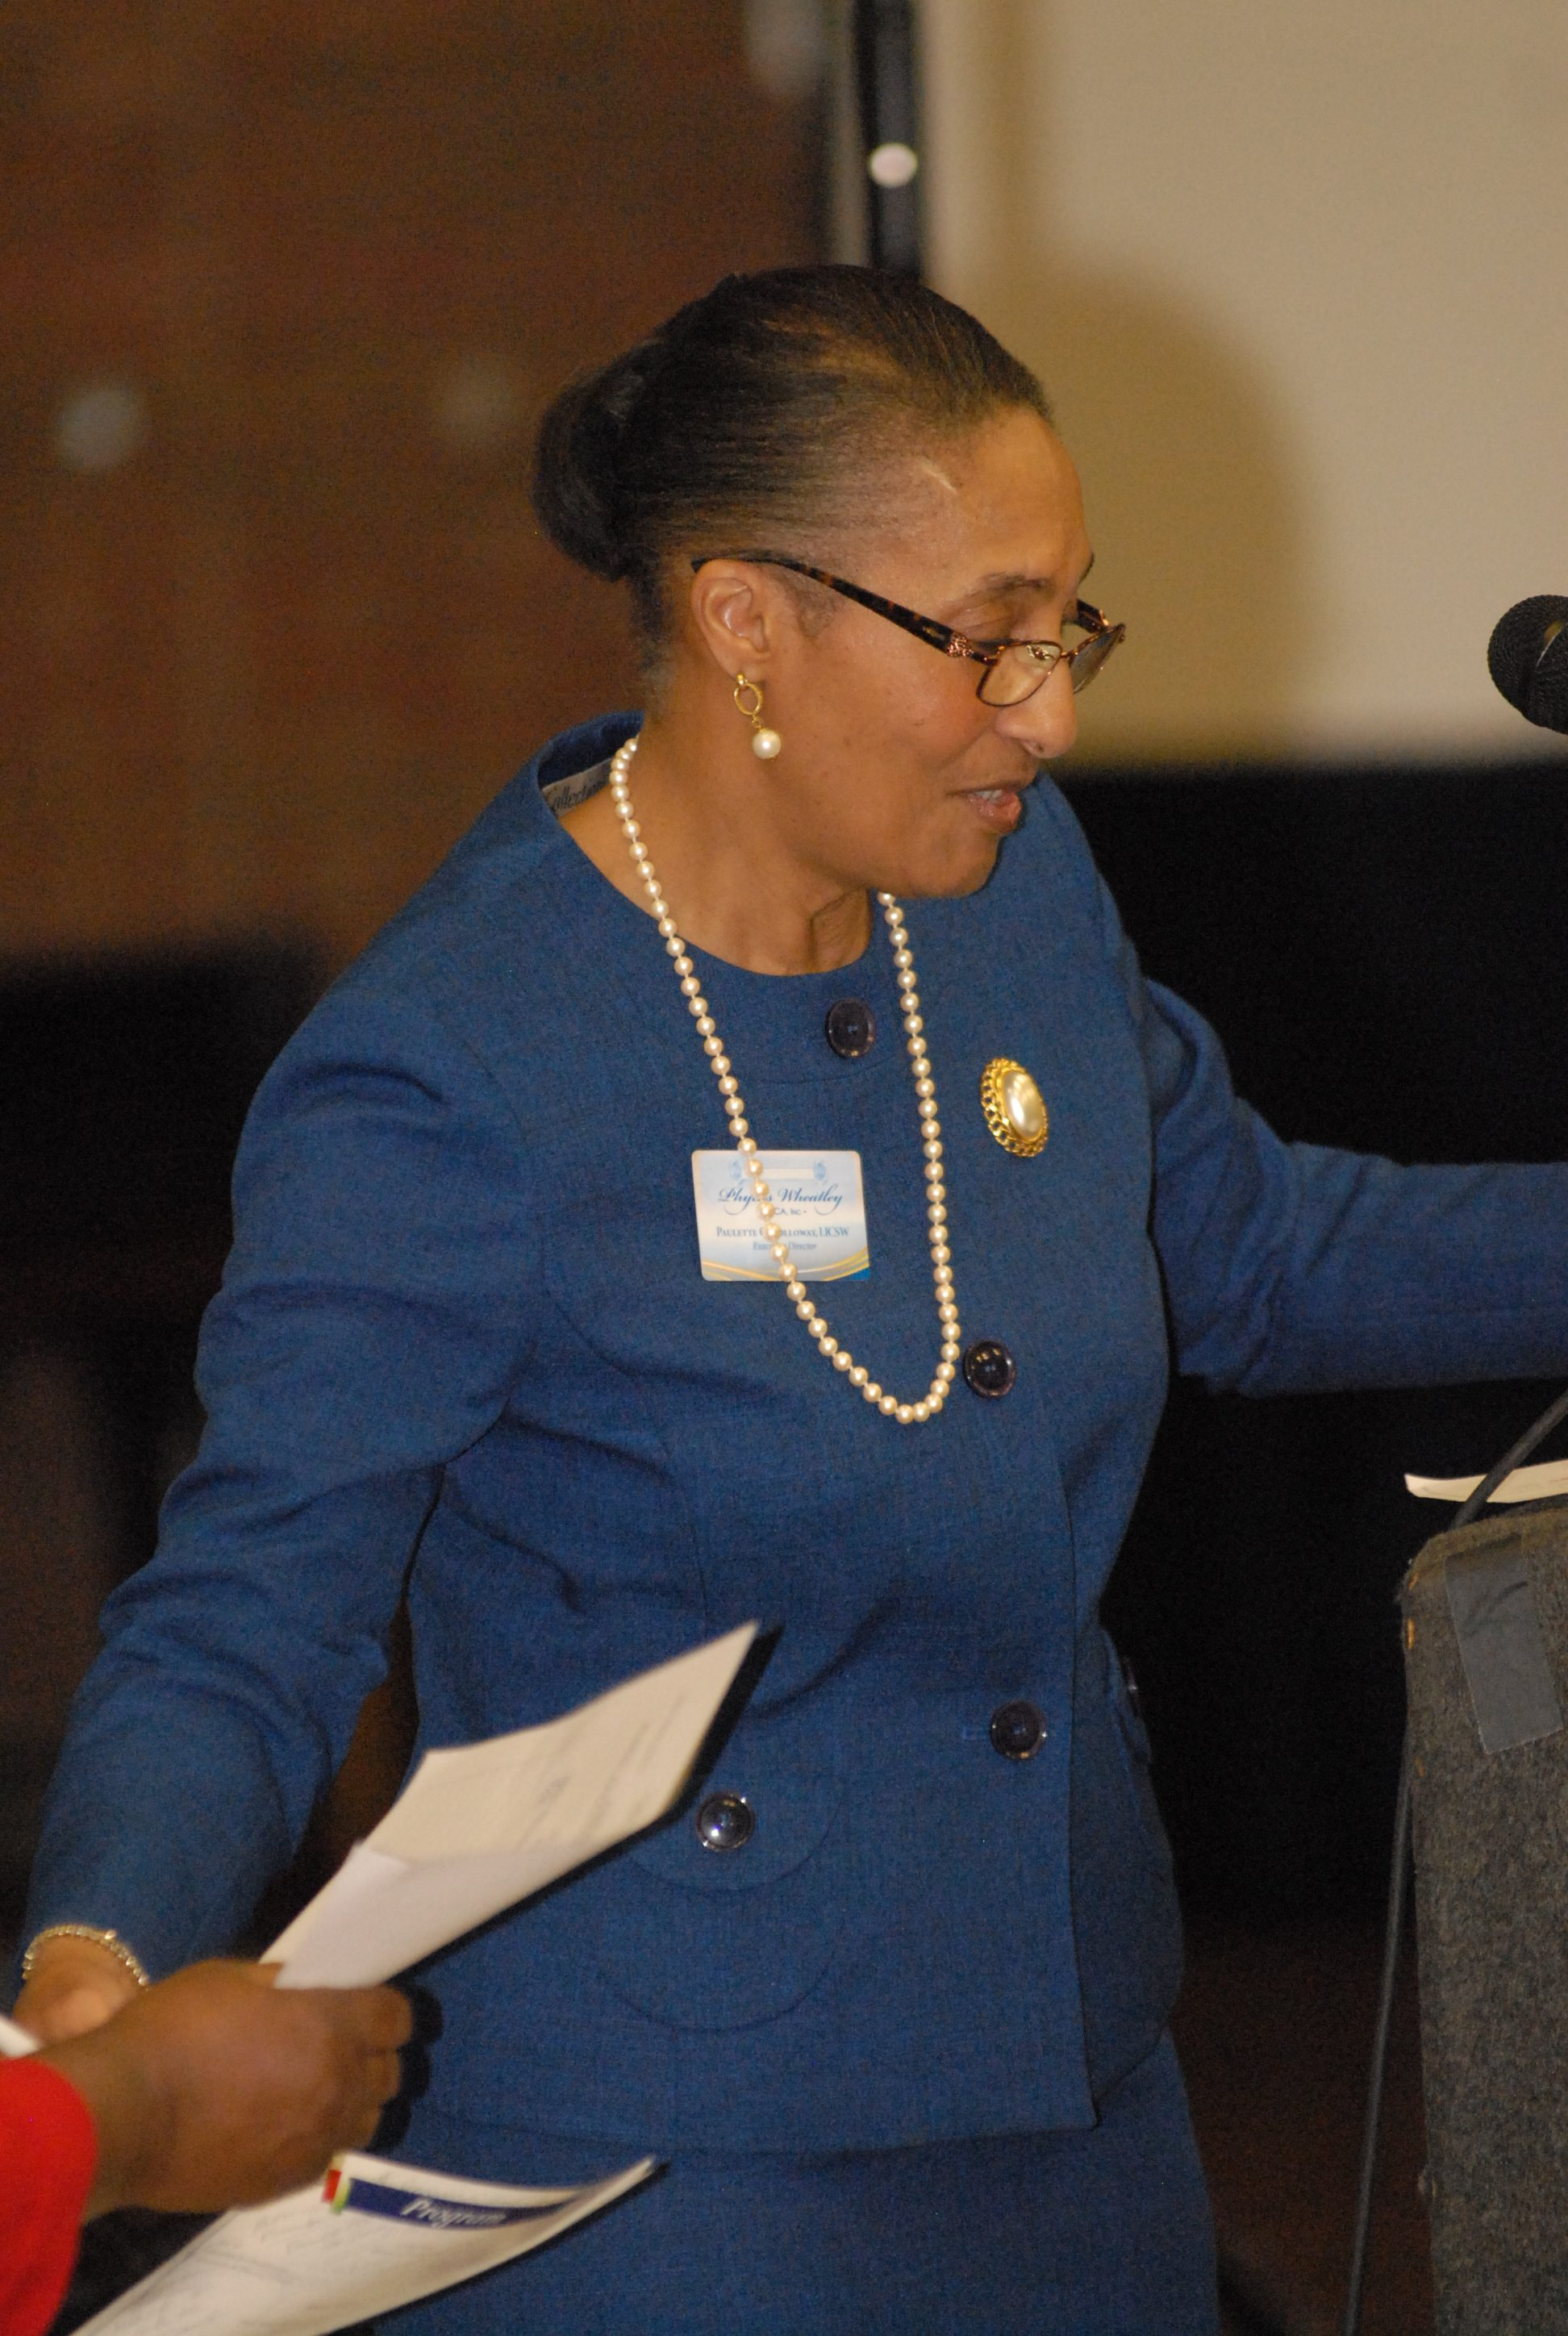 PWYWCA Executive Director Paulette Holloway